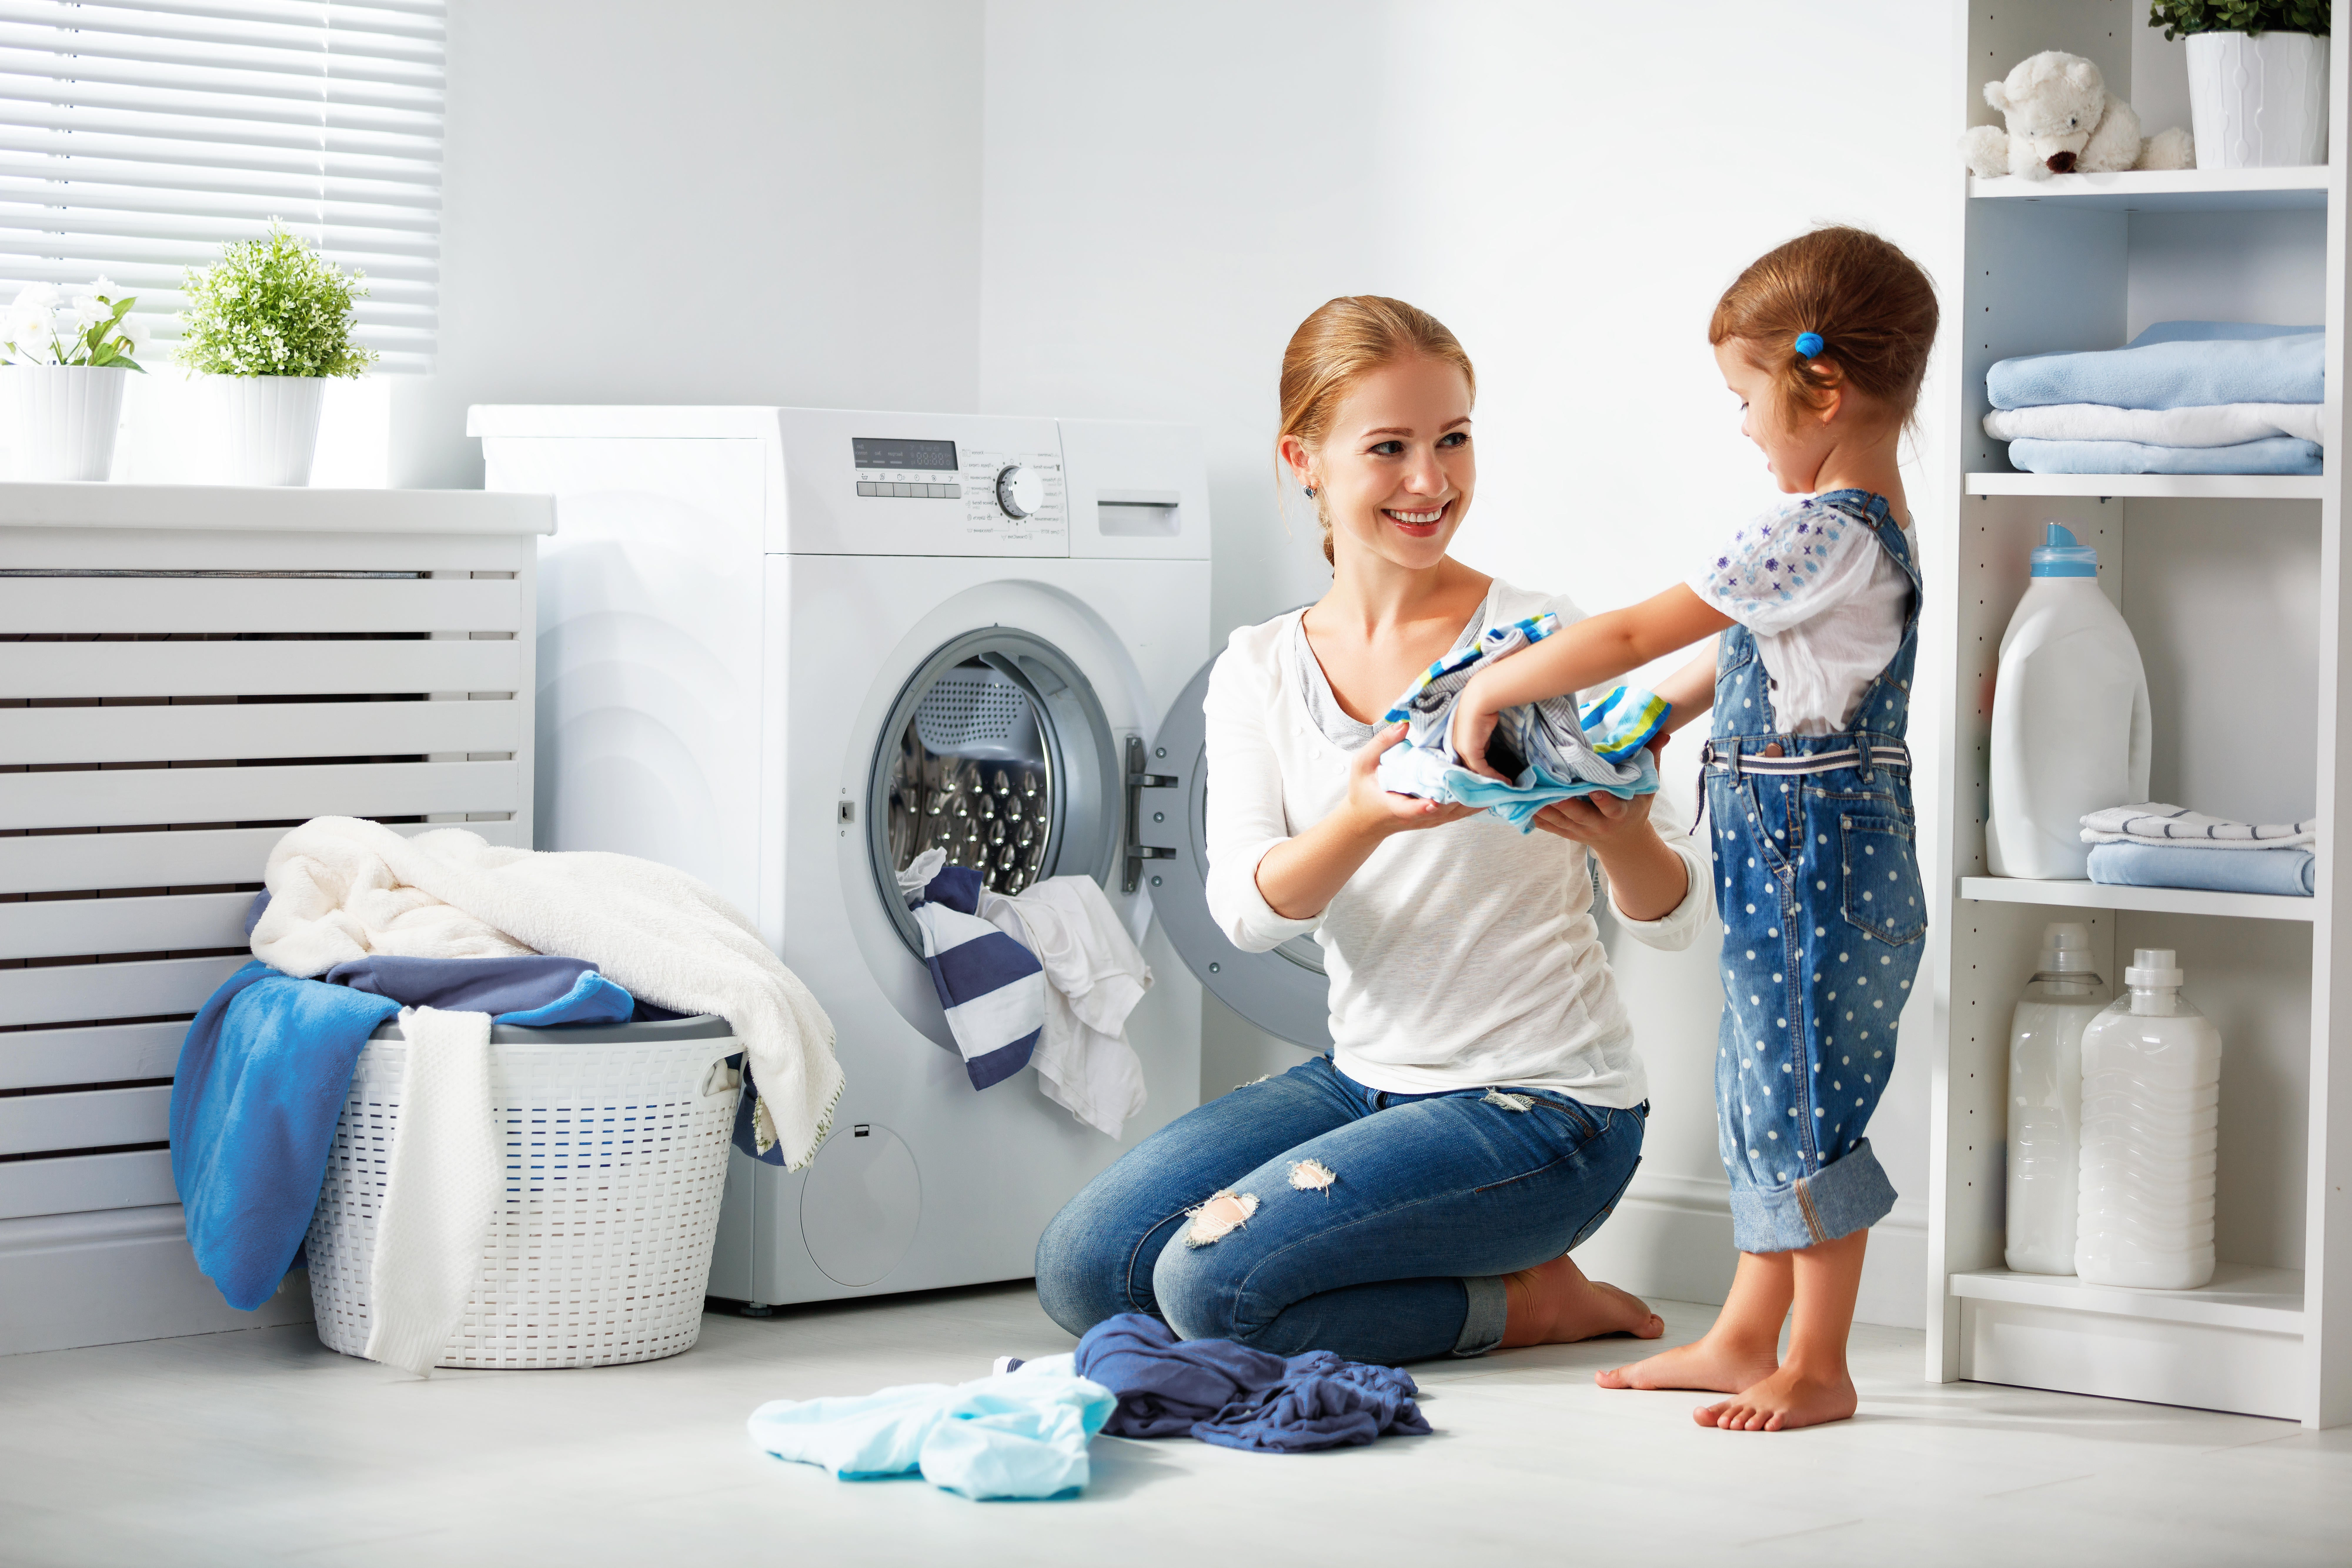 woman folds her daughter's laundry beside a modern clothes dryer